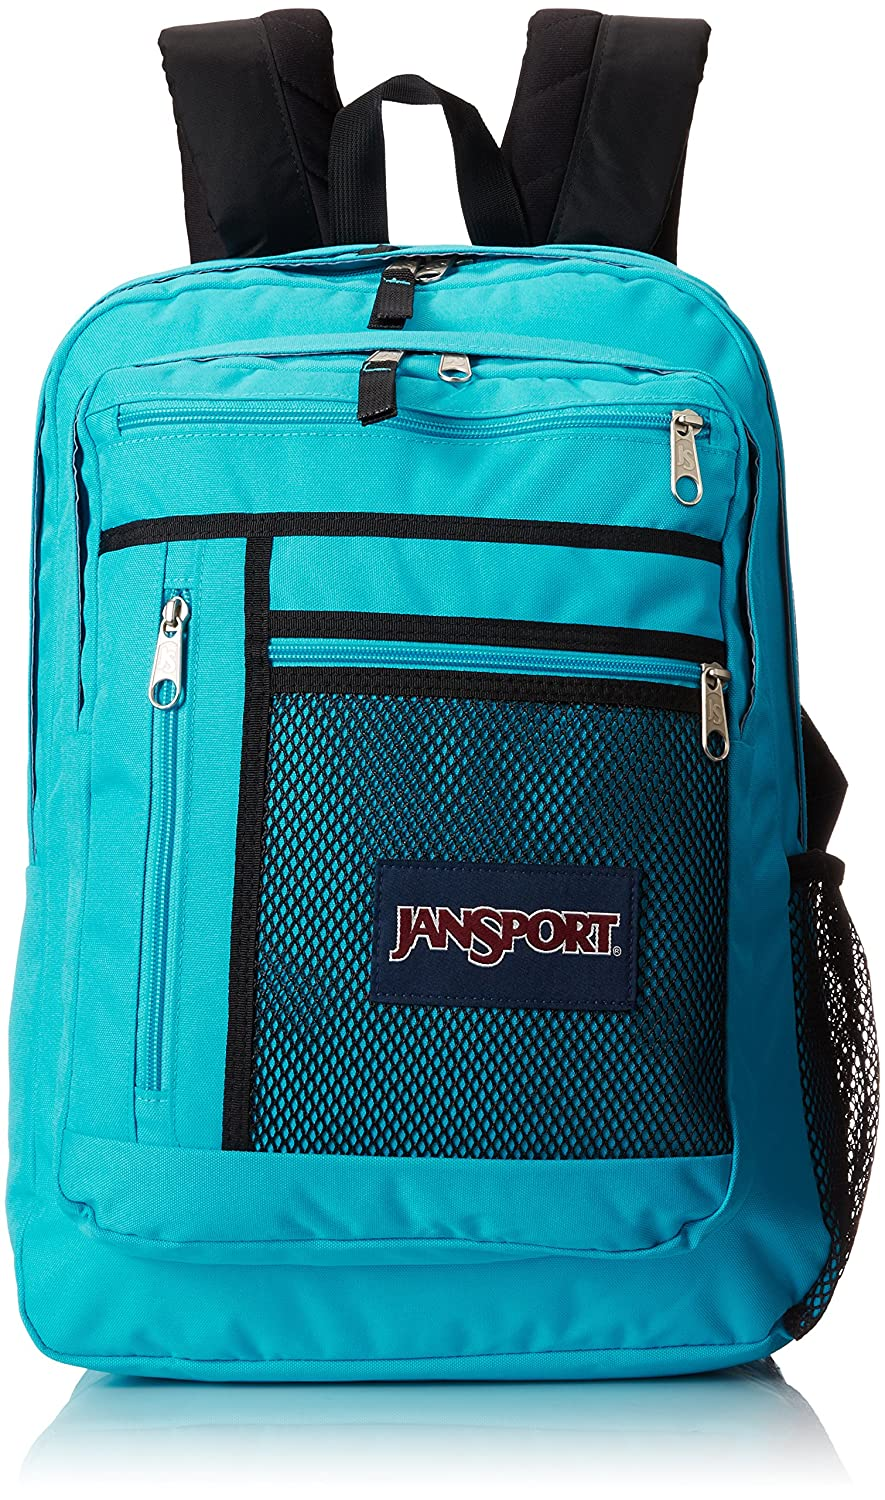 Find helpful customer reviews and review ratings for Samsonite Tectonic Large Backpack at xuavawardtan.gq Read honest and unbiased product reviews from our users.